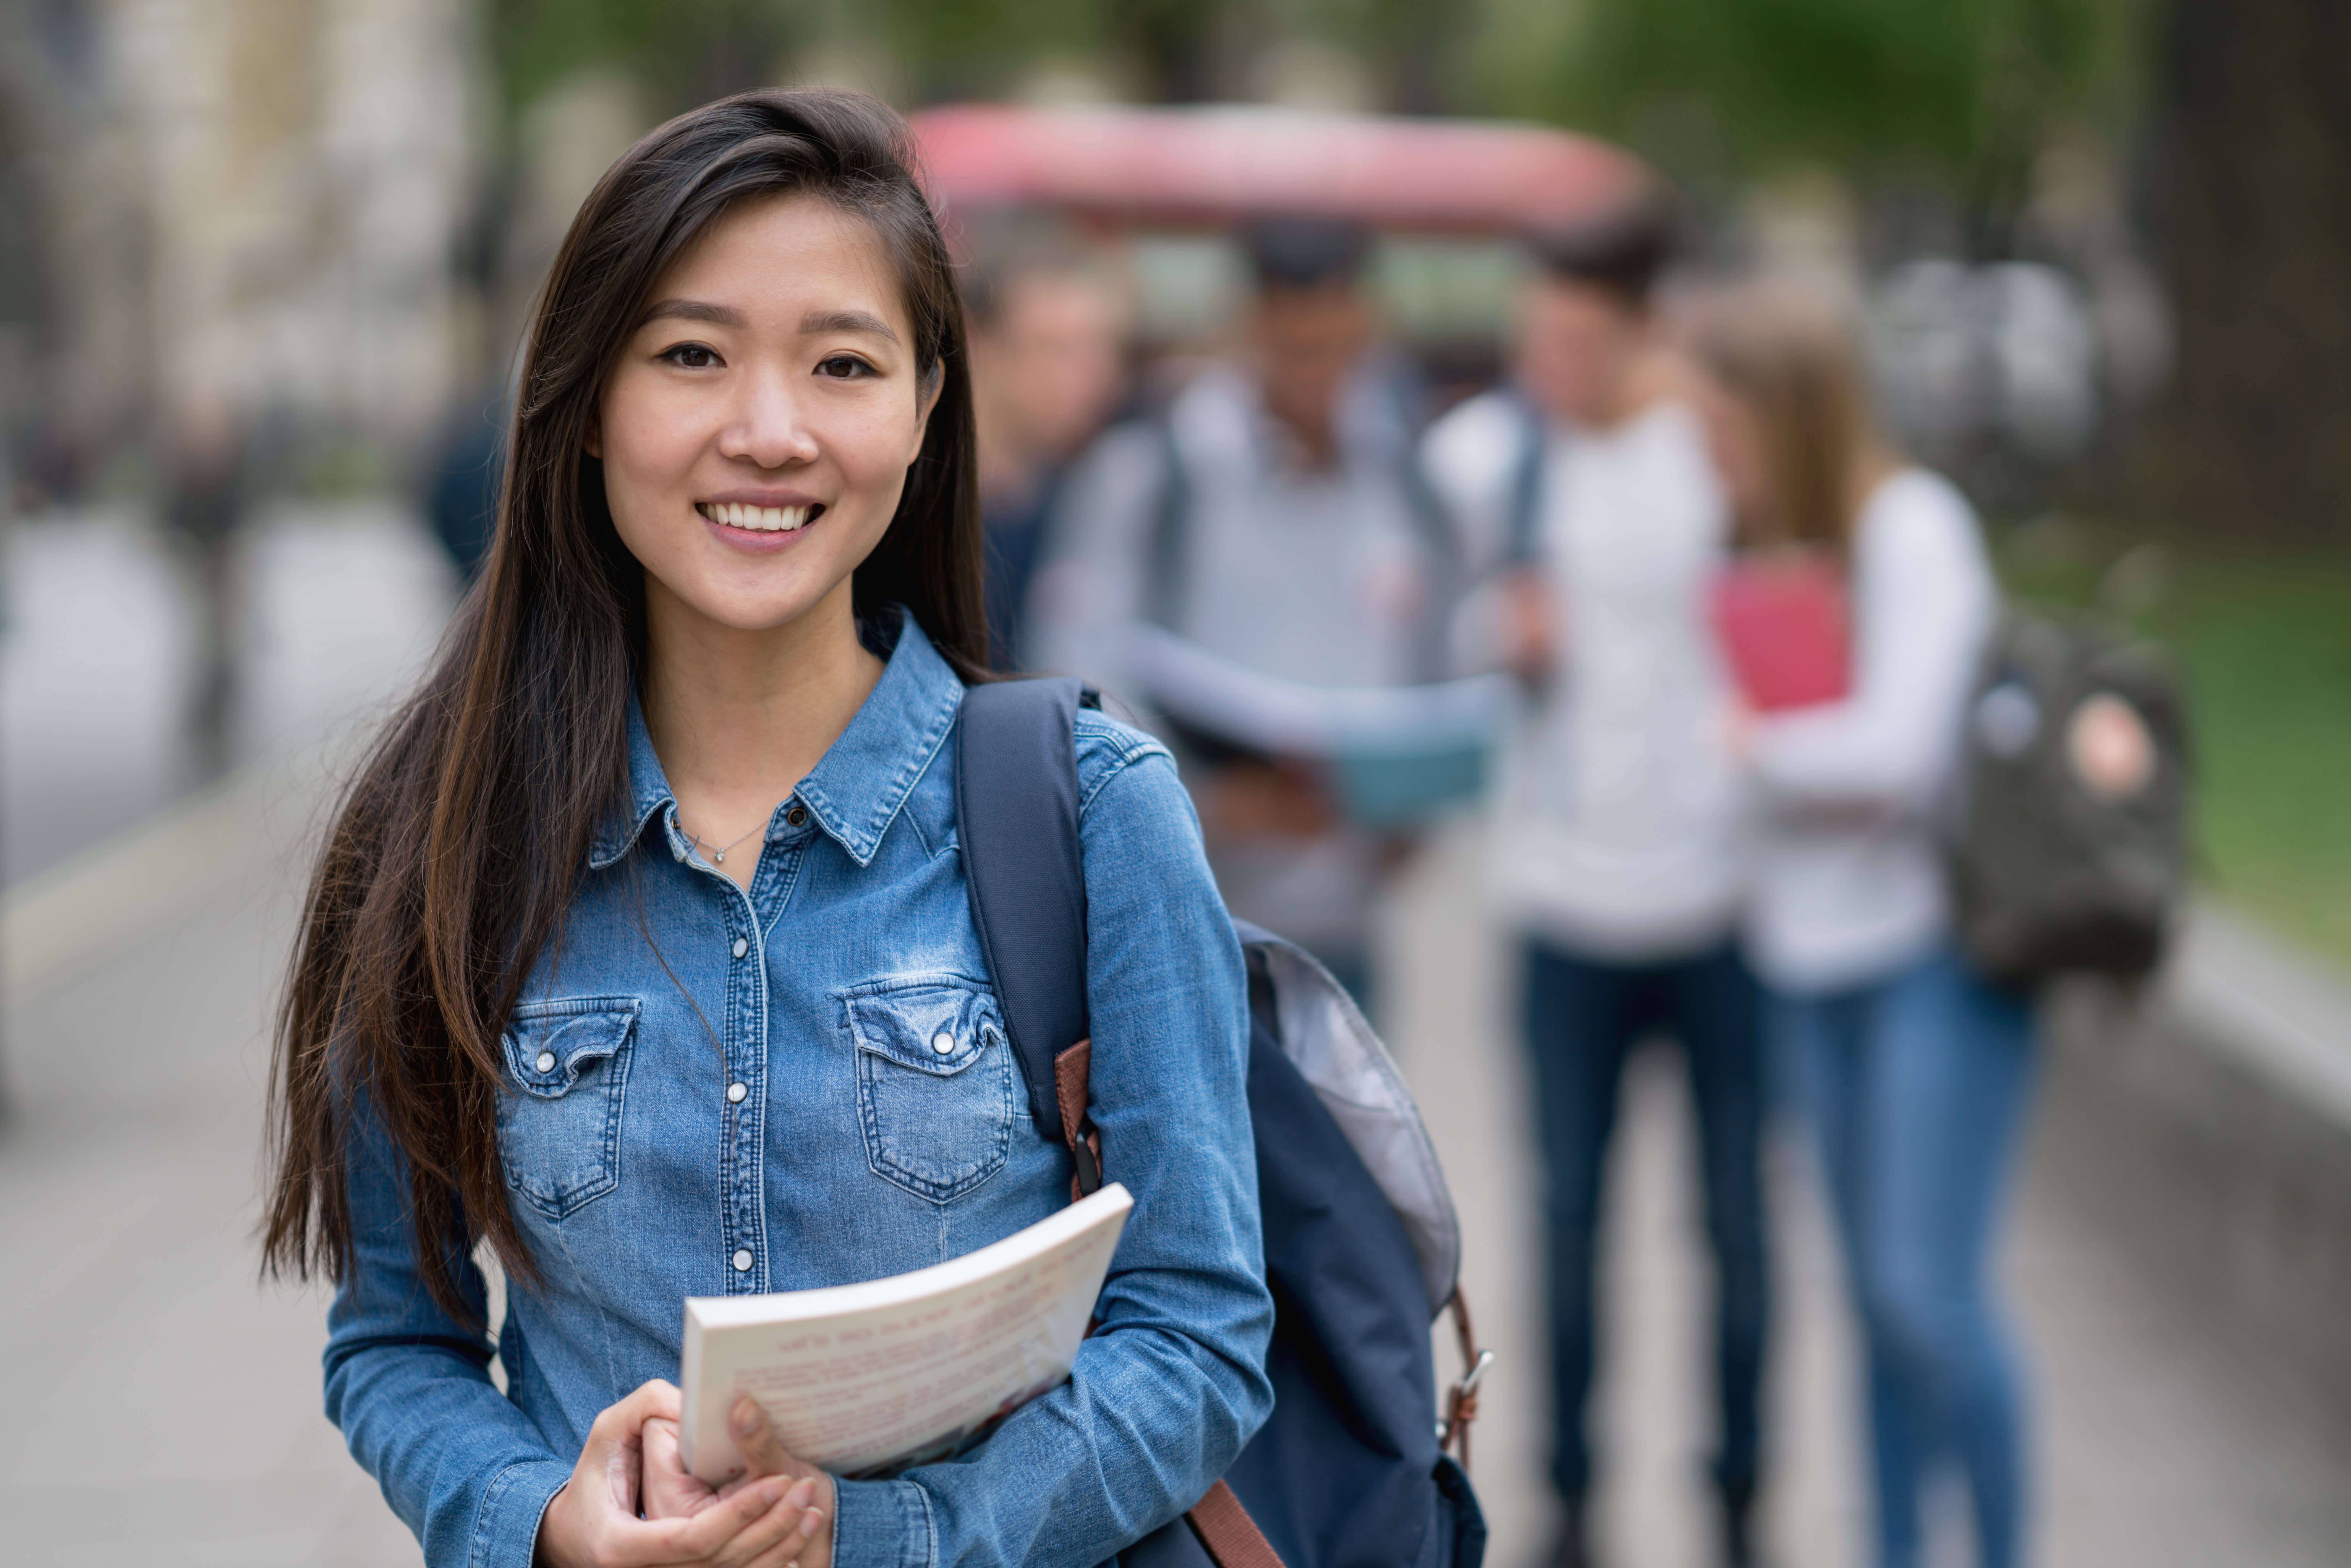 PTE Academic: The fast and fair English test that gets you to your dream destinations